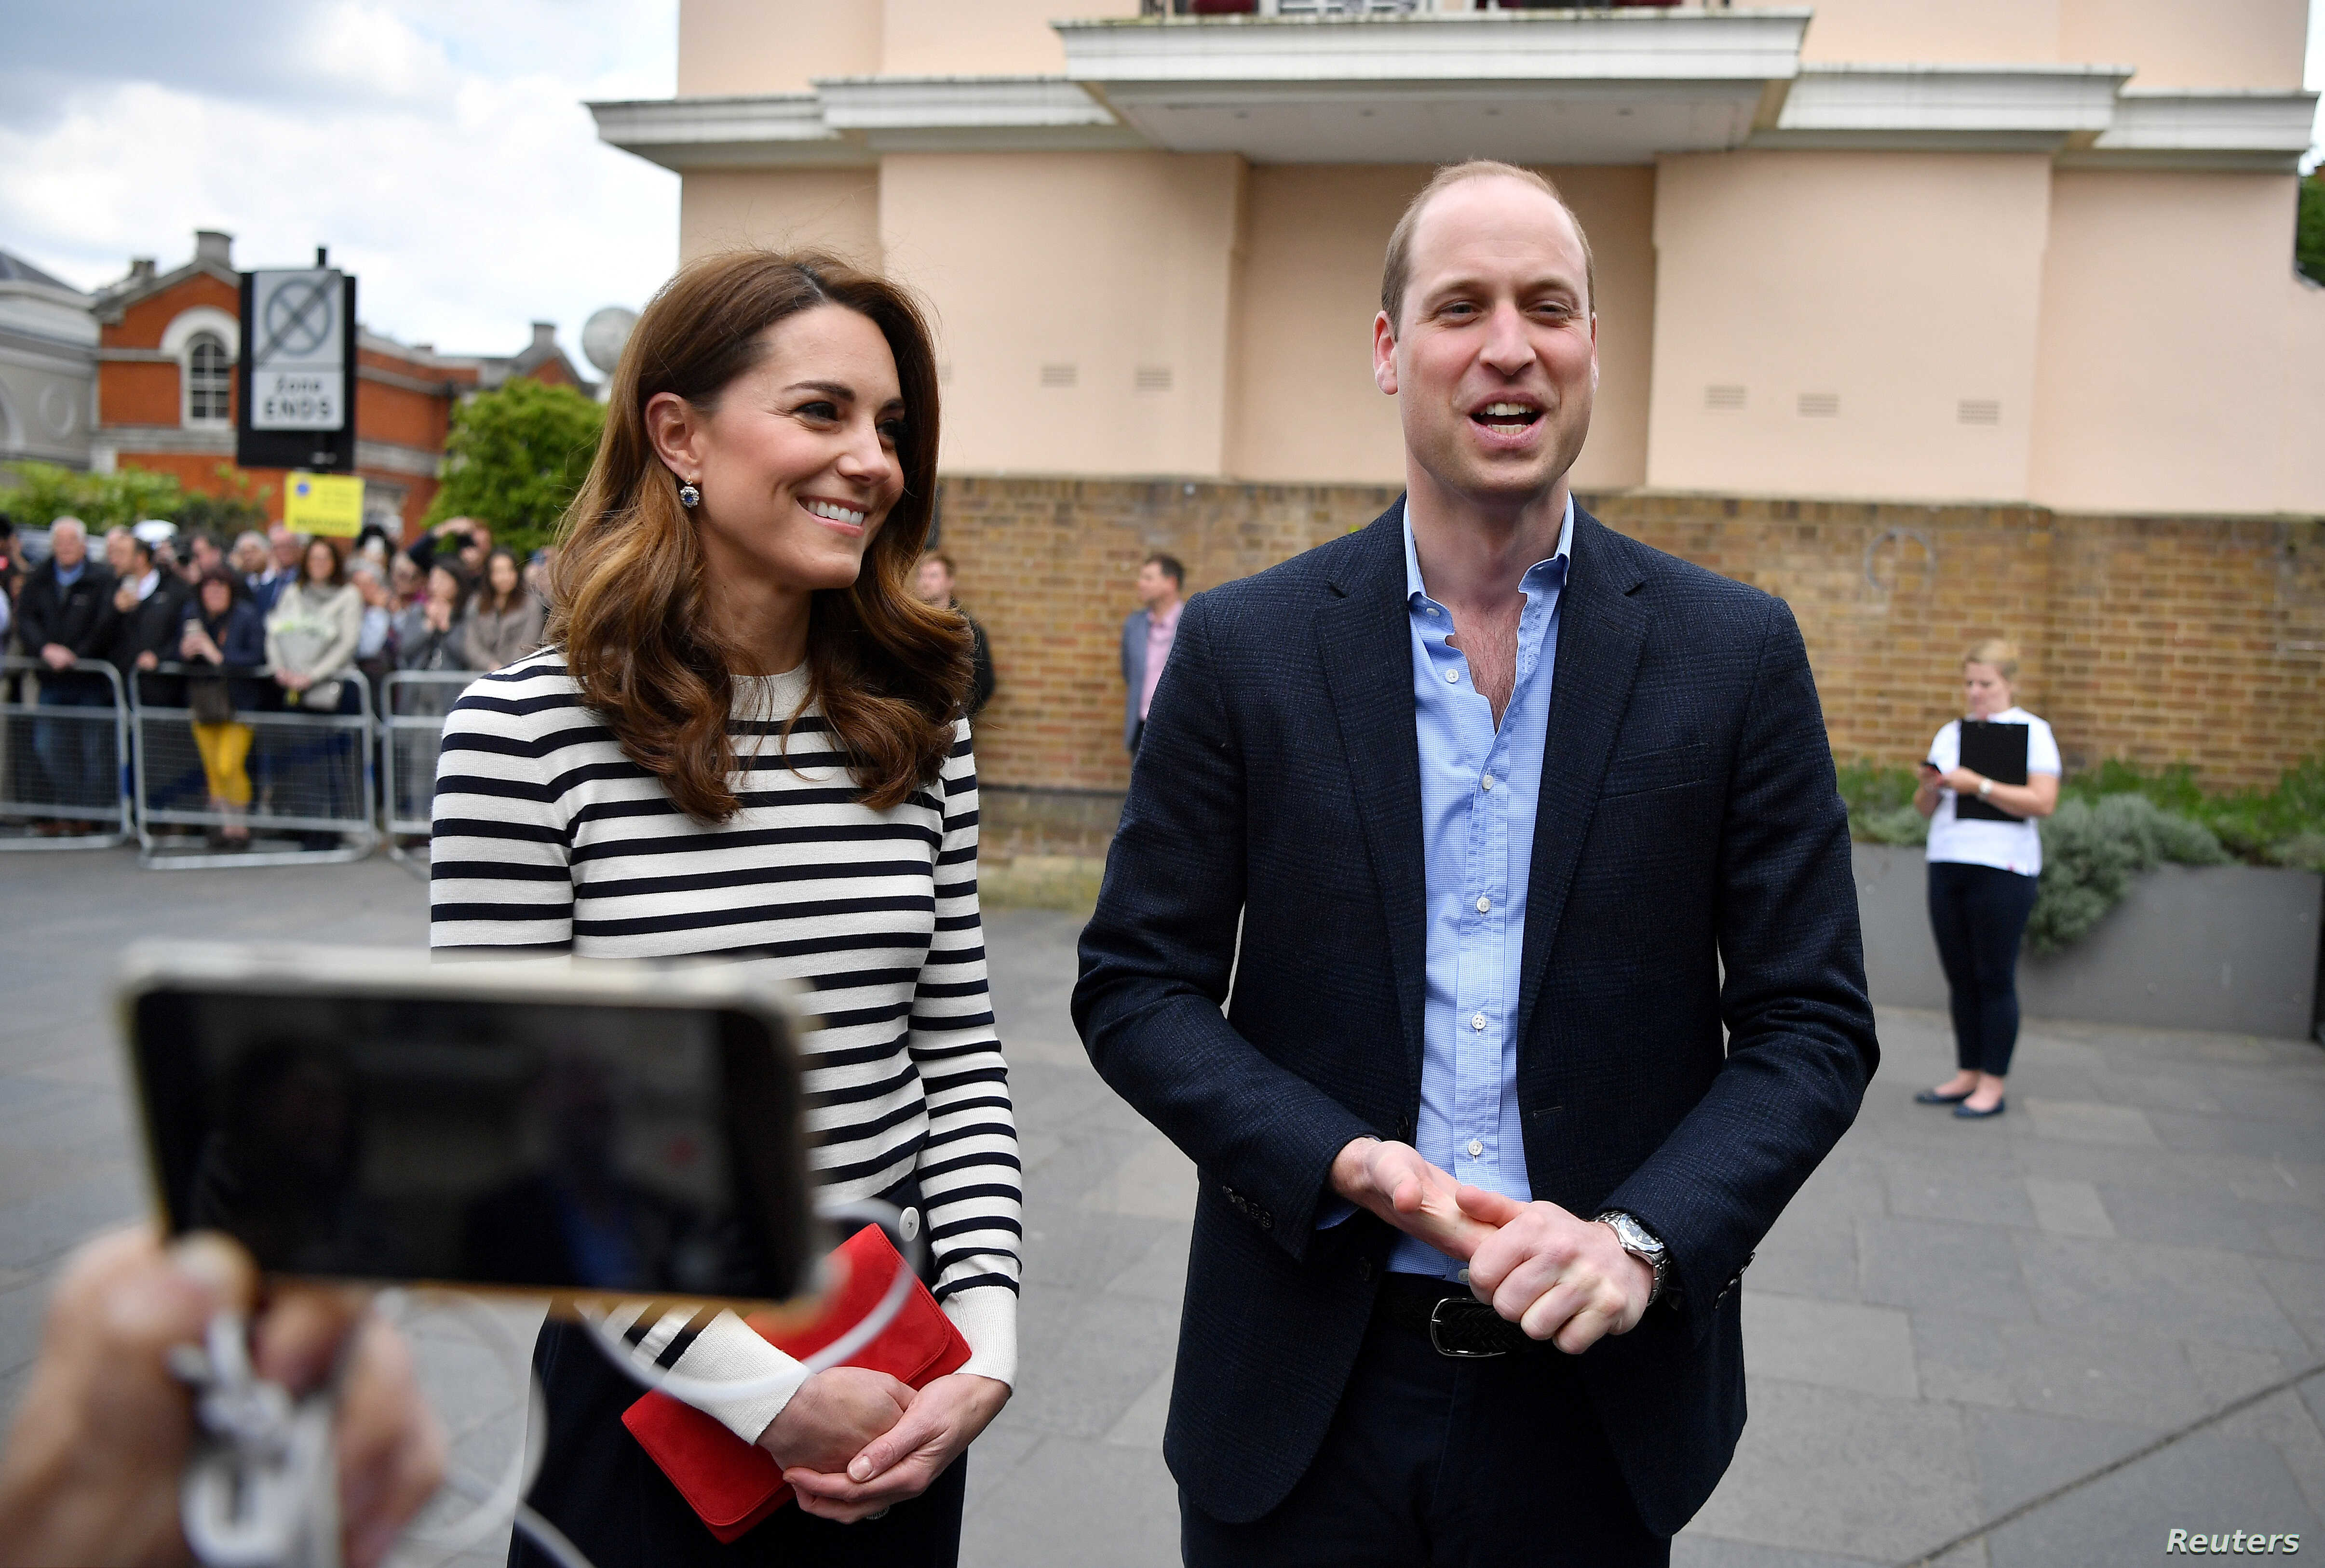 Britain's Prince William and Catherine Duchess of Cambridge talk to members of the media about their newborn nephew, as they arrive to launch the King's Cup Regatta in London, Britain, May 7, 2019.